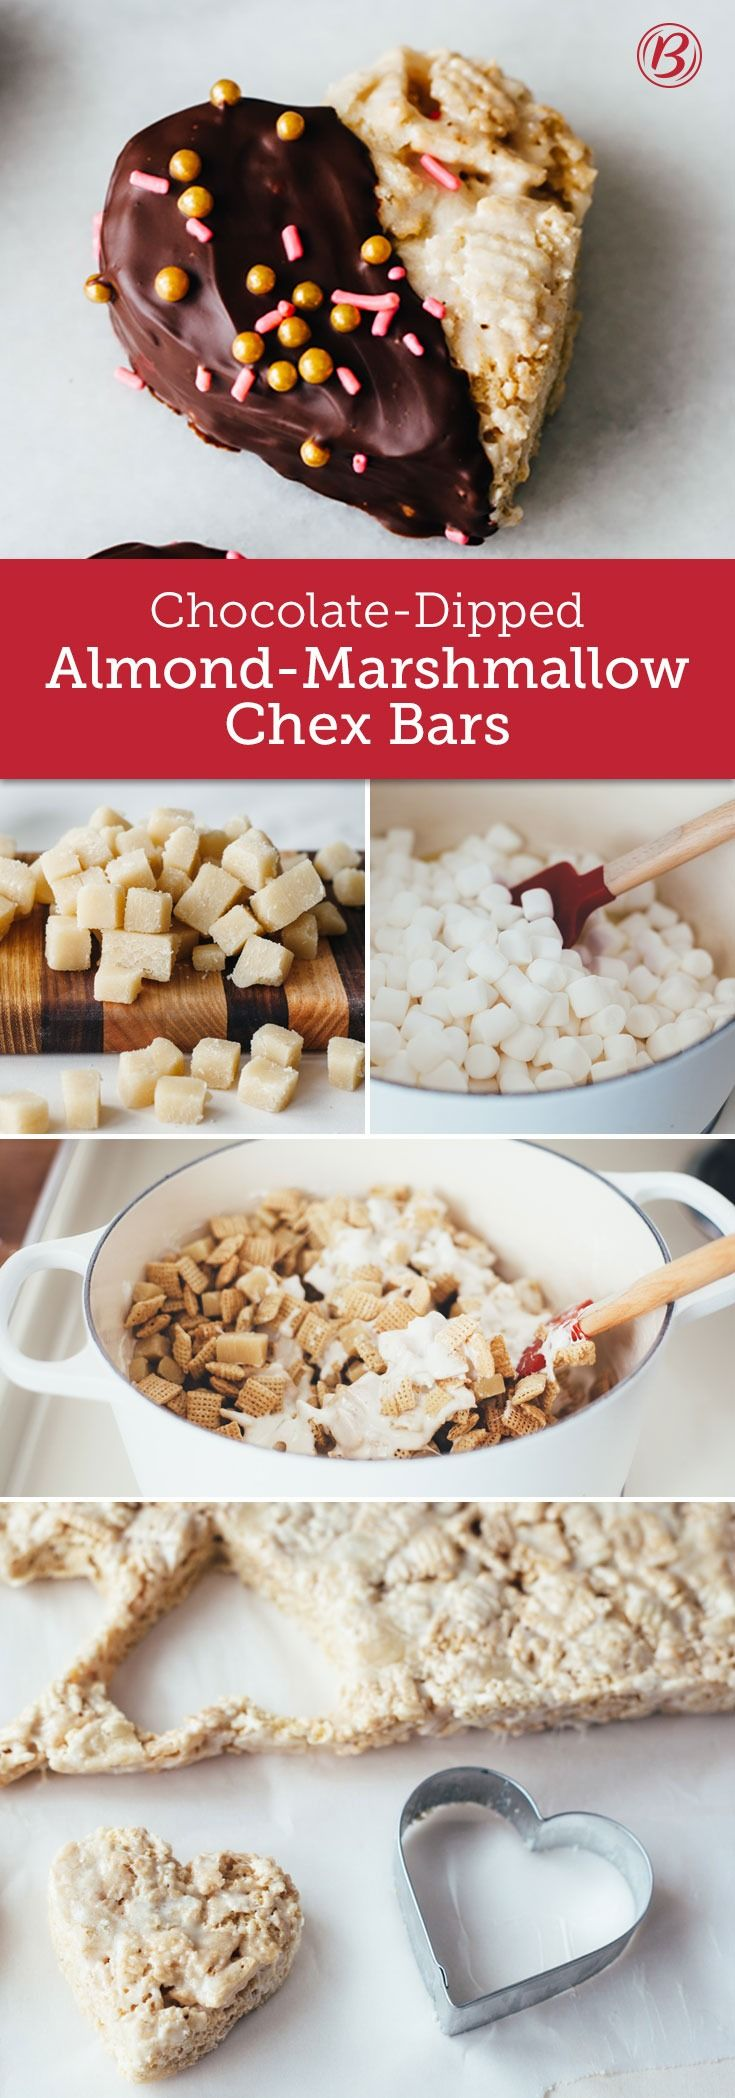 Combine the sophisticated flavor of almond with the crunchy sweetness of Chex™ marshmallow treats for a delicious Valentine's Day goodie. If it's too much of a mess to dip the bars in melted chocolate, just stir some chocolate chips into the cereal mixture instead.